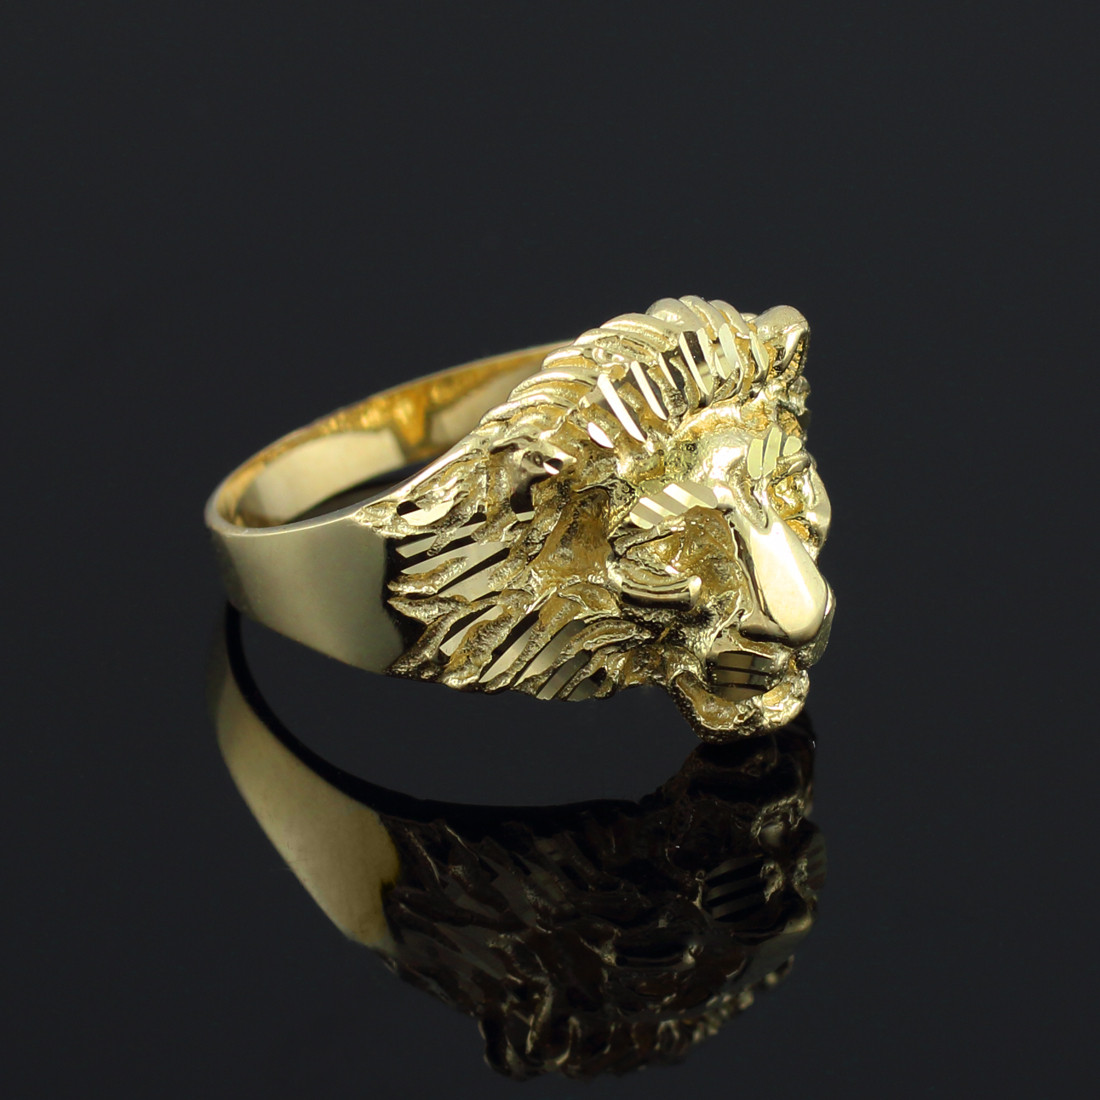 Details about gold lion head ring 10k 14k yellow white rose gold